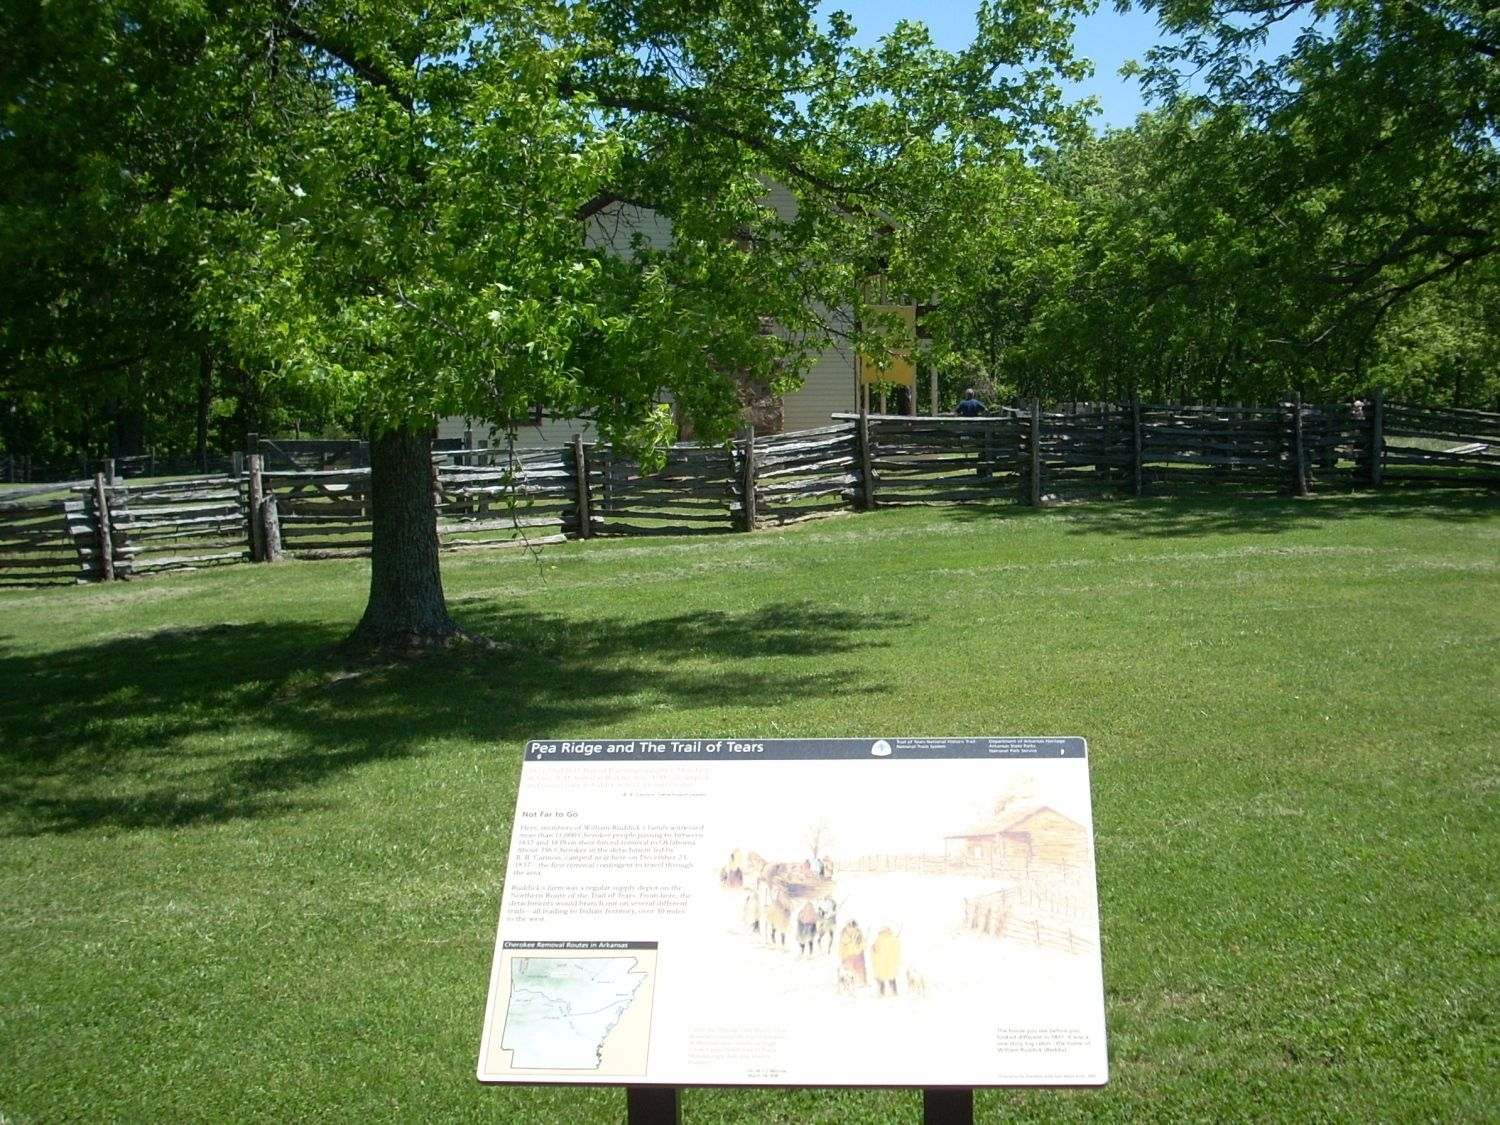 Pea Ridge and the Trail of Tears Marker